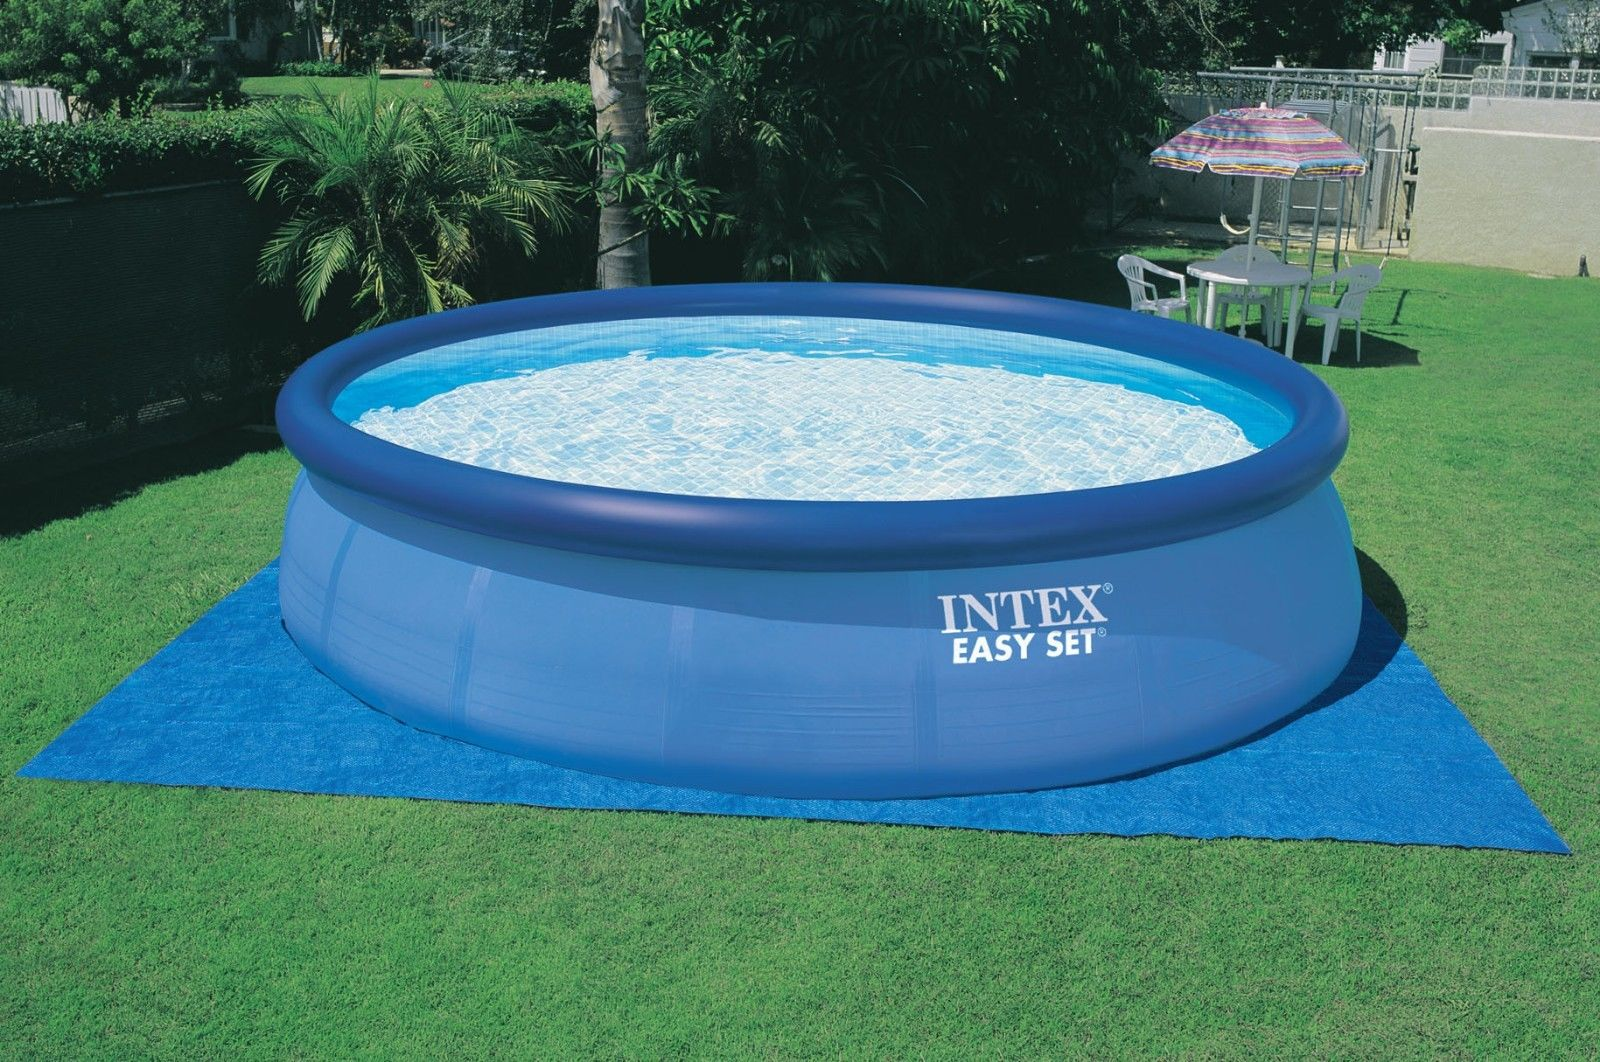 Intex 15 x 42 easy set above ground swimming pool package for Above ground swimming pools uk